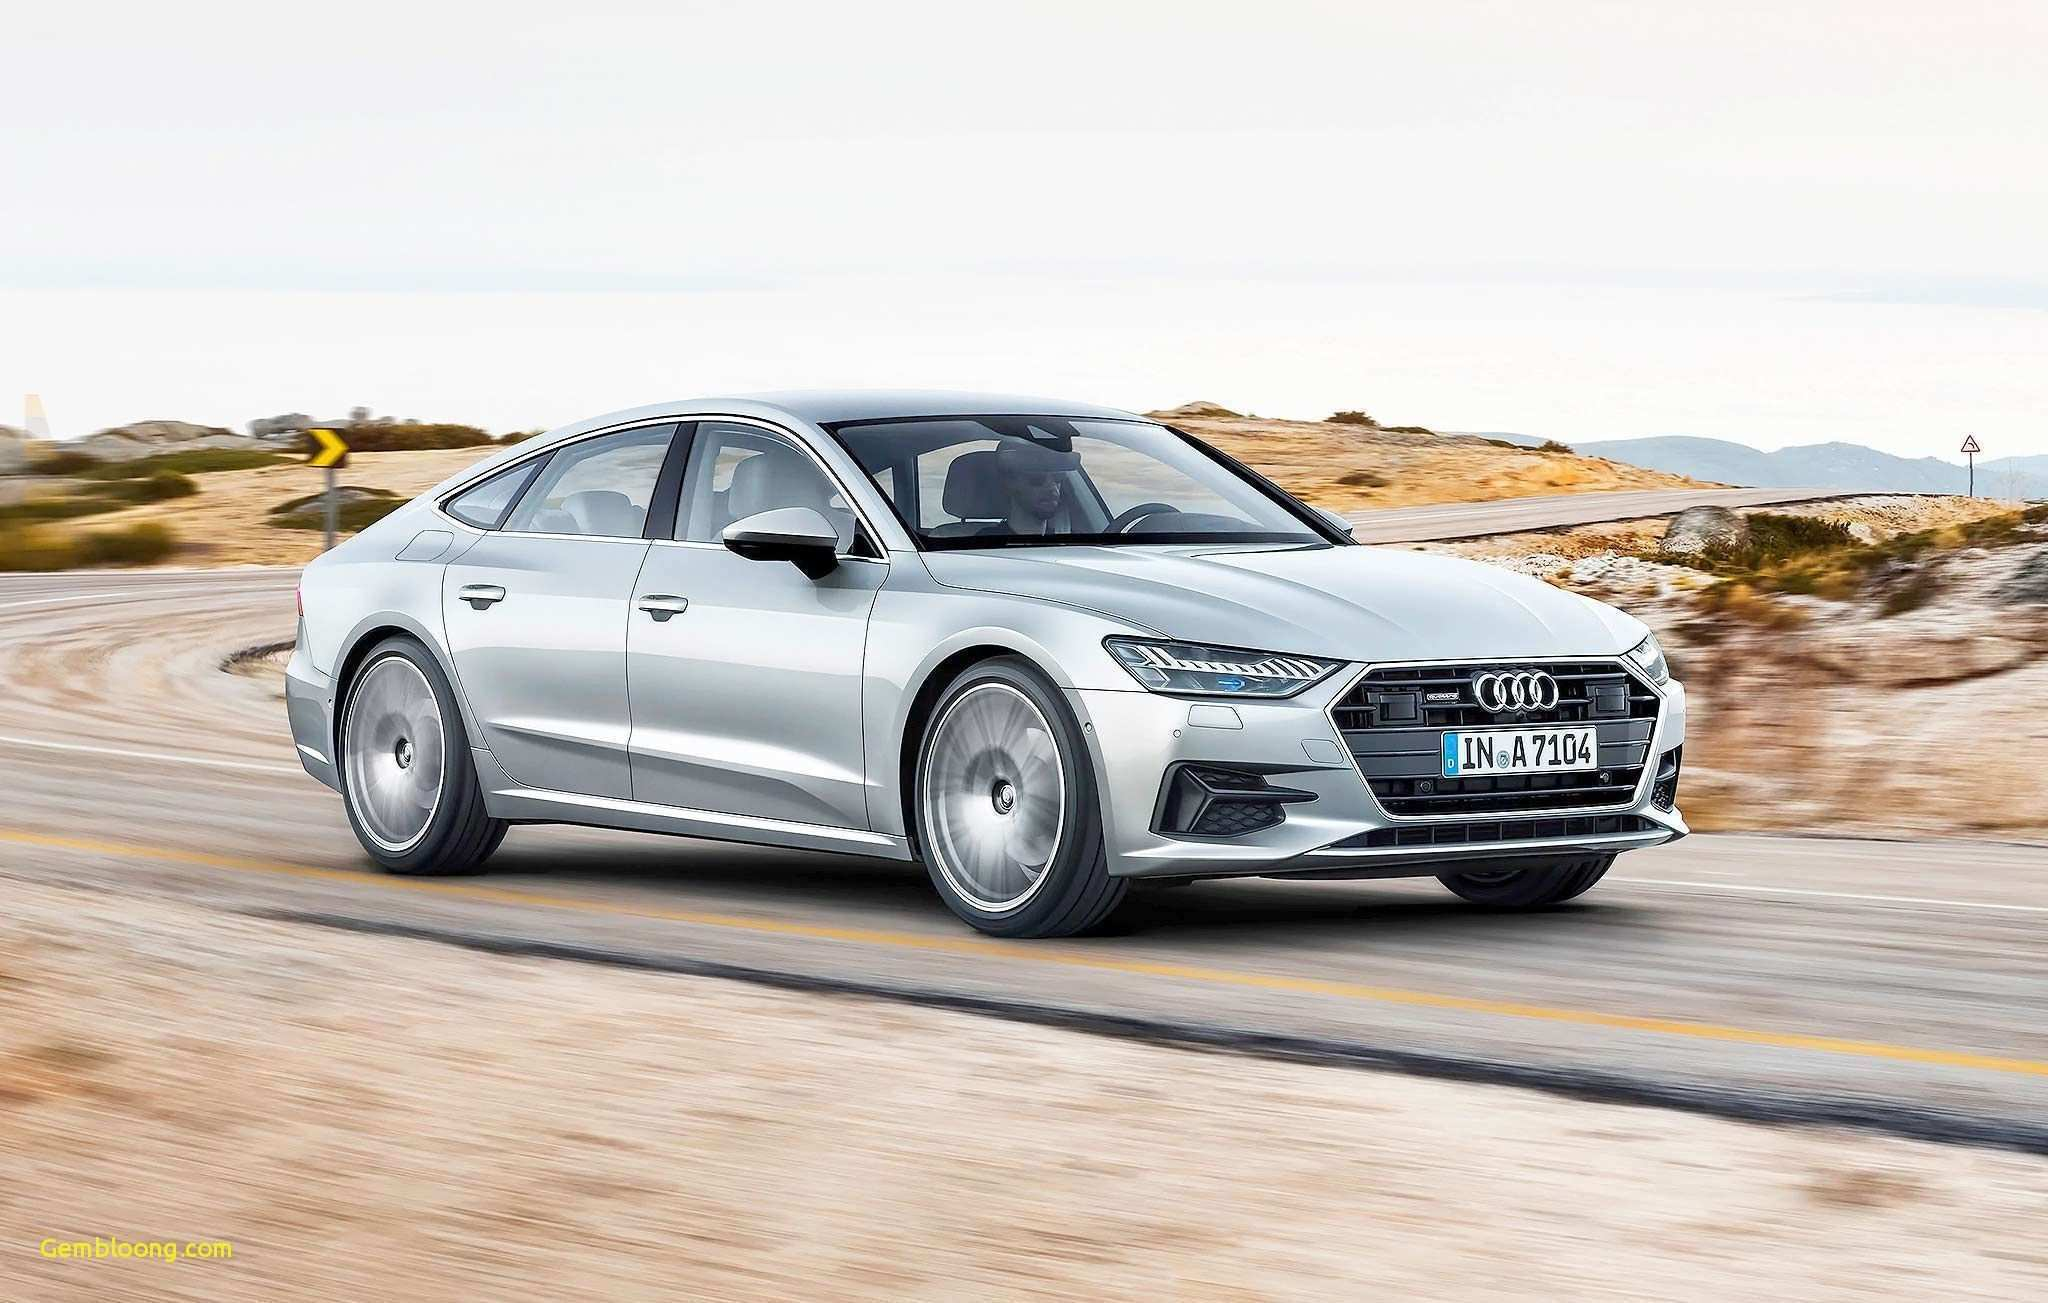 63 Concept of 2020 Audi A7 Colors New Concept by 2020 Audi A7 Colors